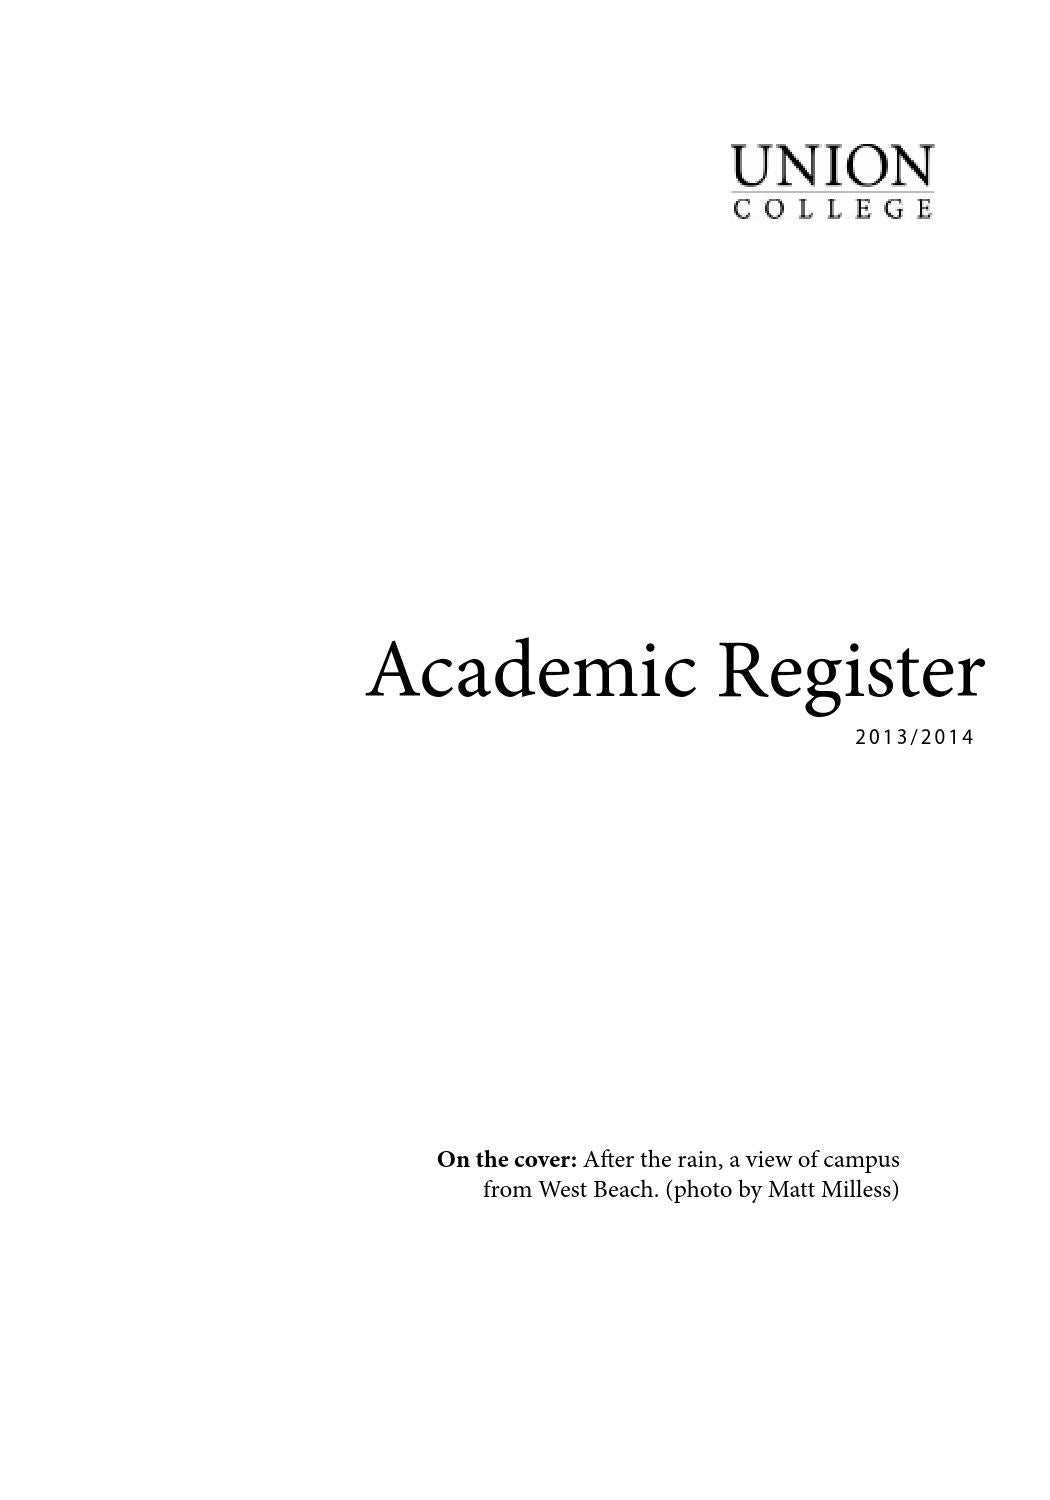 55a91b37e8 Academic Register 2013-14 by Union College - issuu